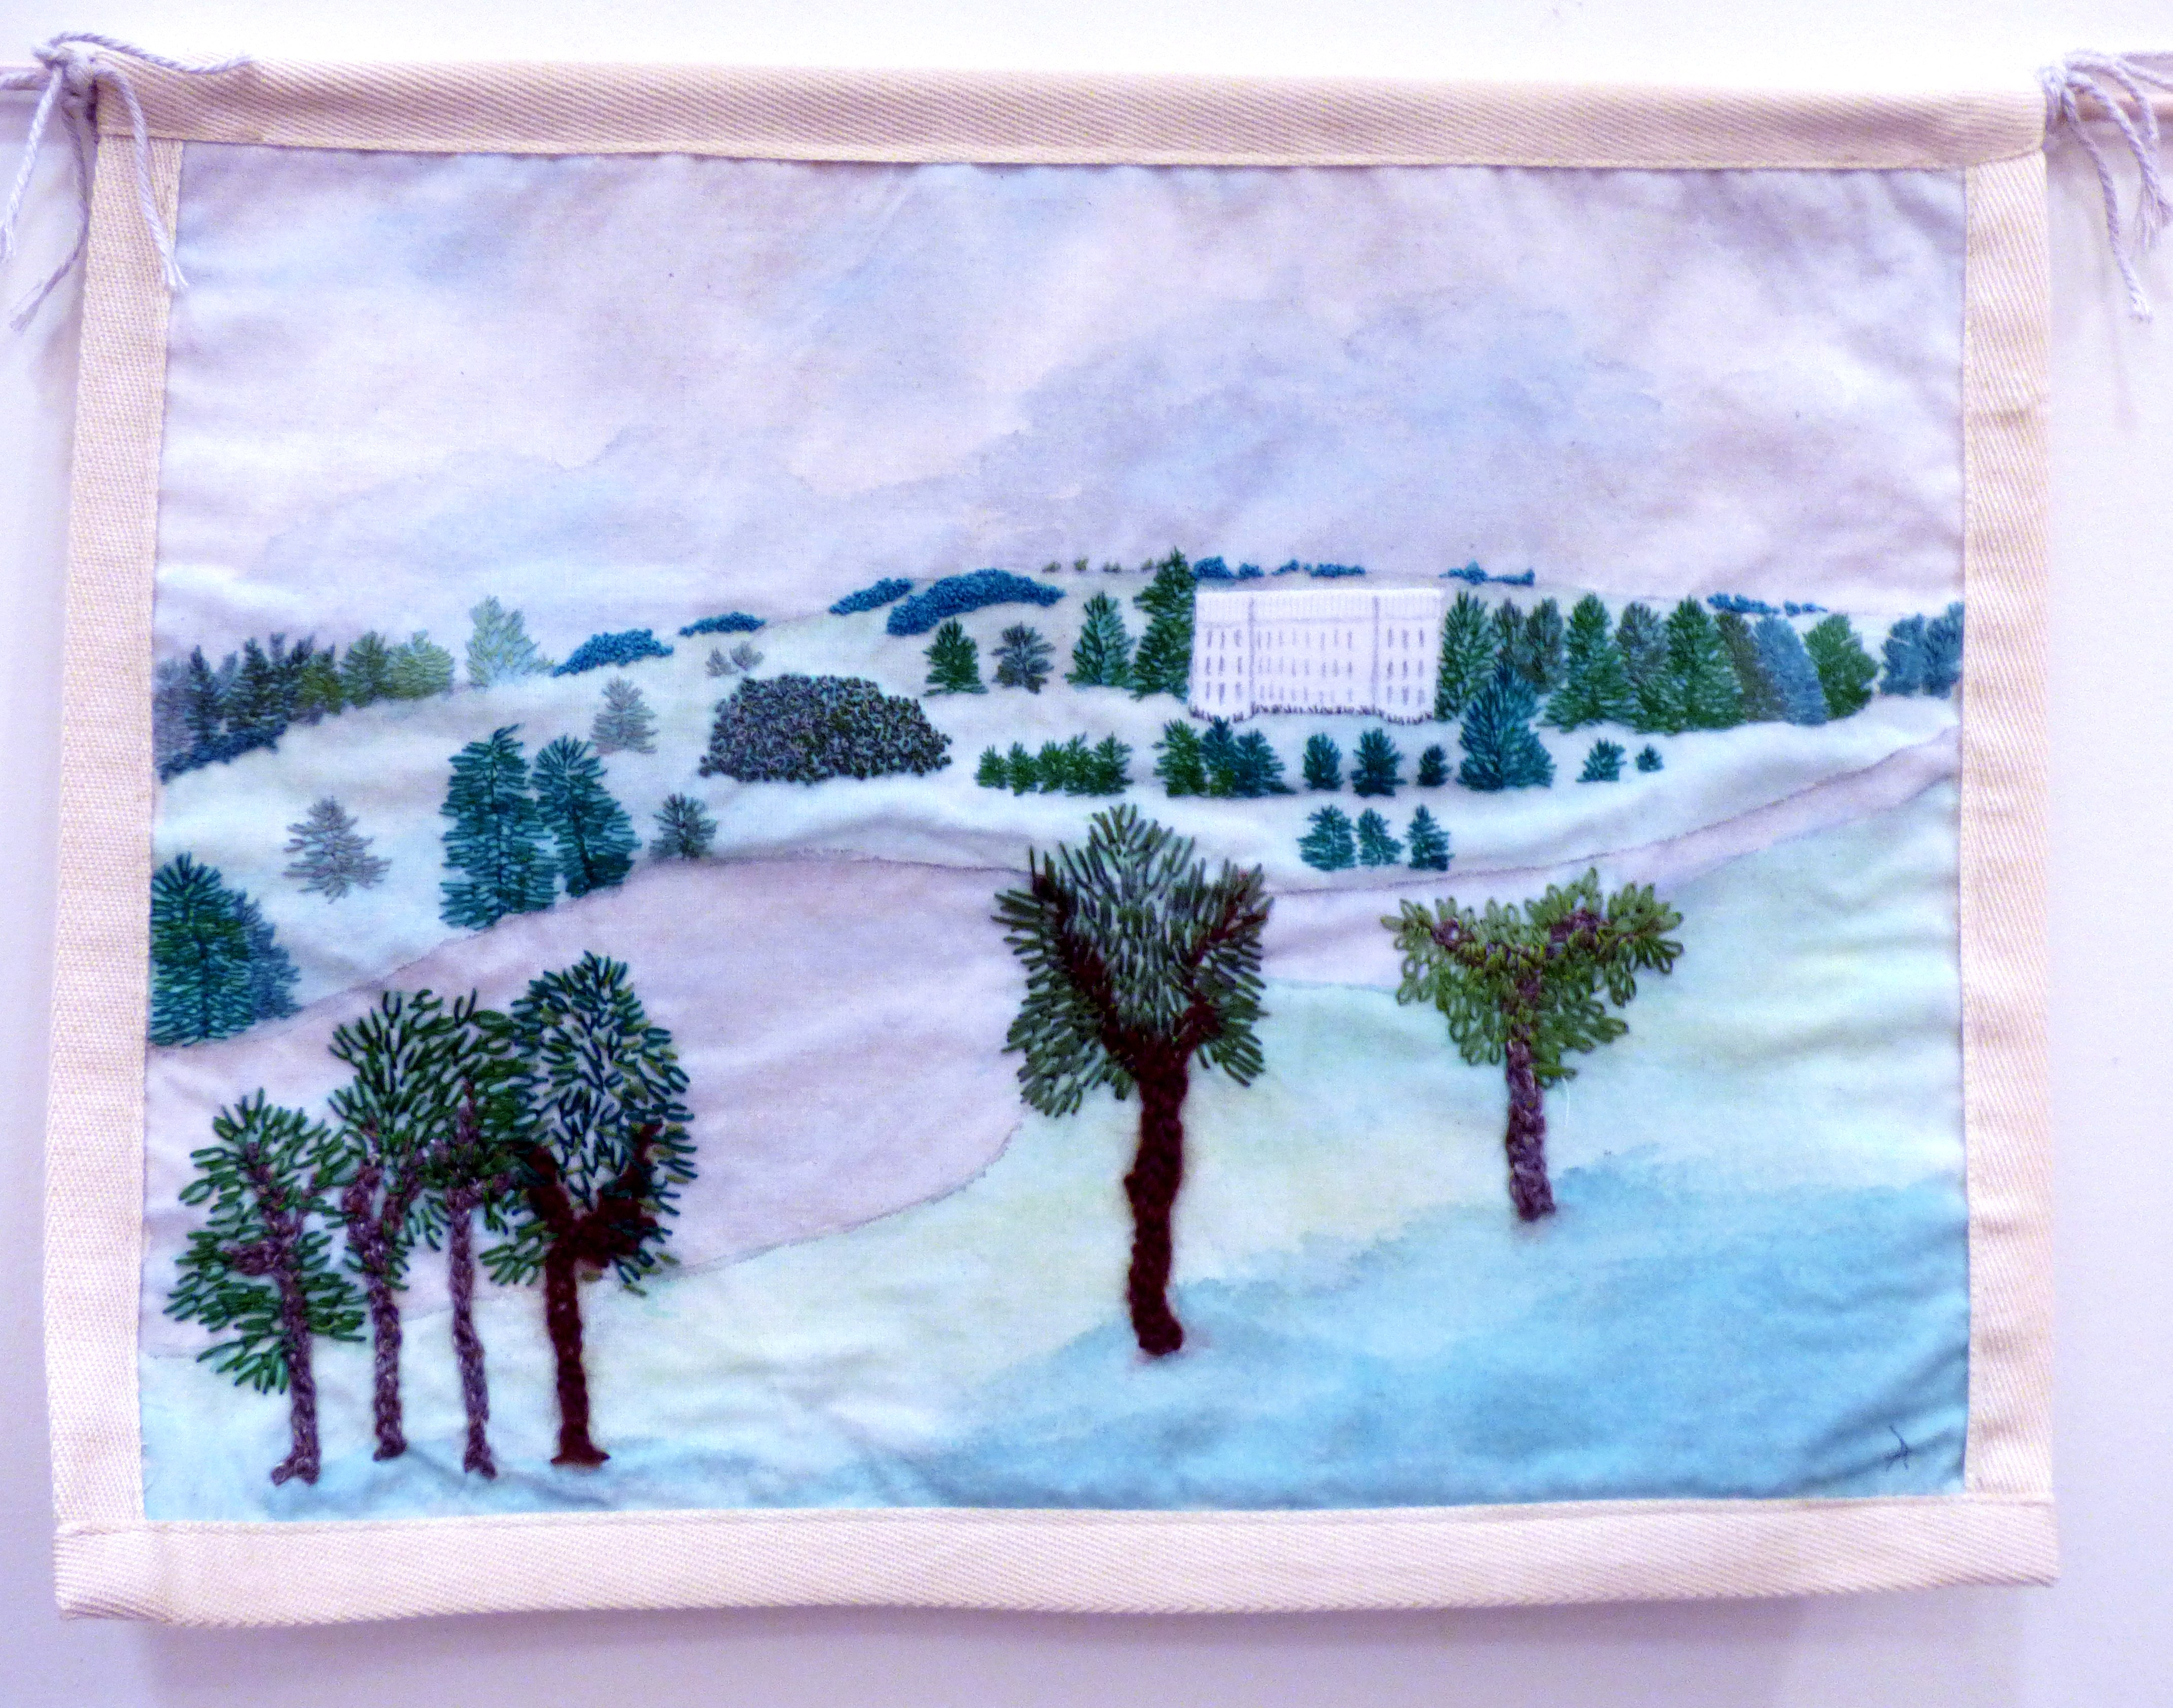 CAPABILITY BROWN'S SKETCH OF HIS PLAN FOR TRENTHAM GARDENS by Ann Holmes, Macclesfield & District EG, hand stitched on painted calico background